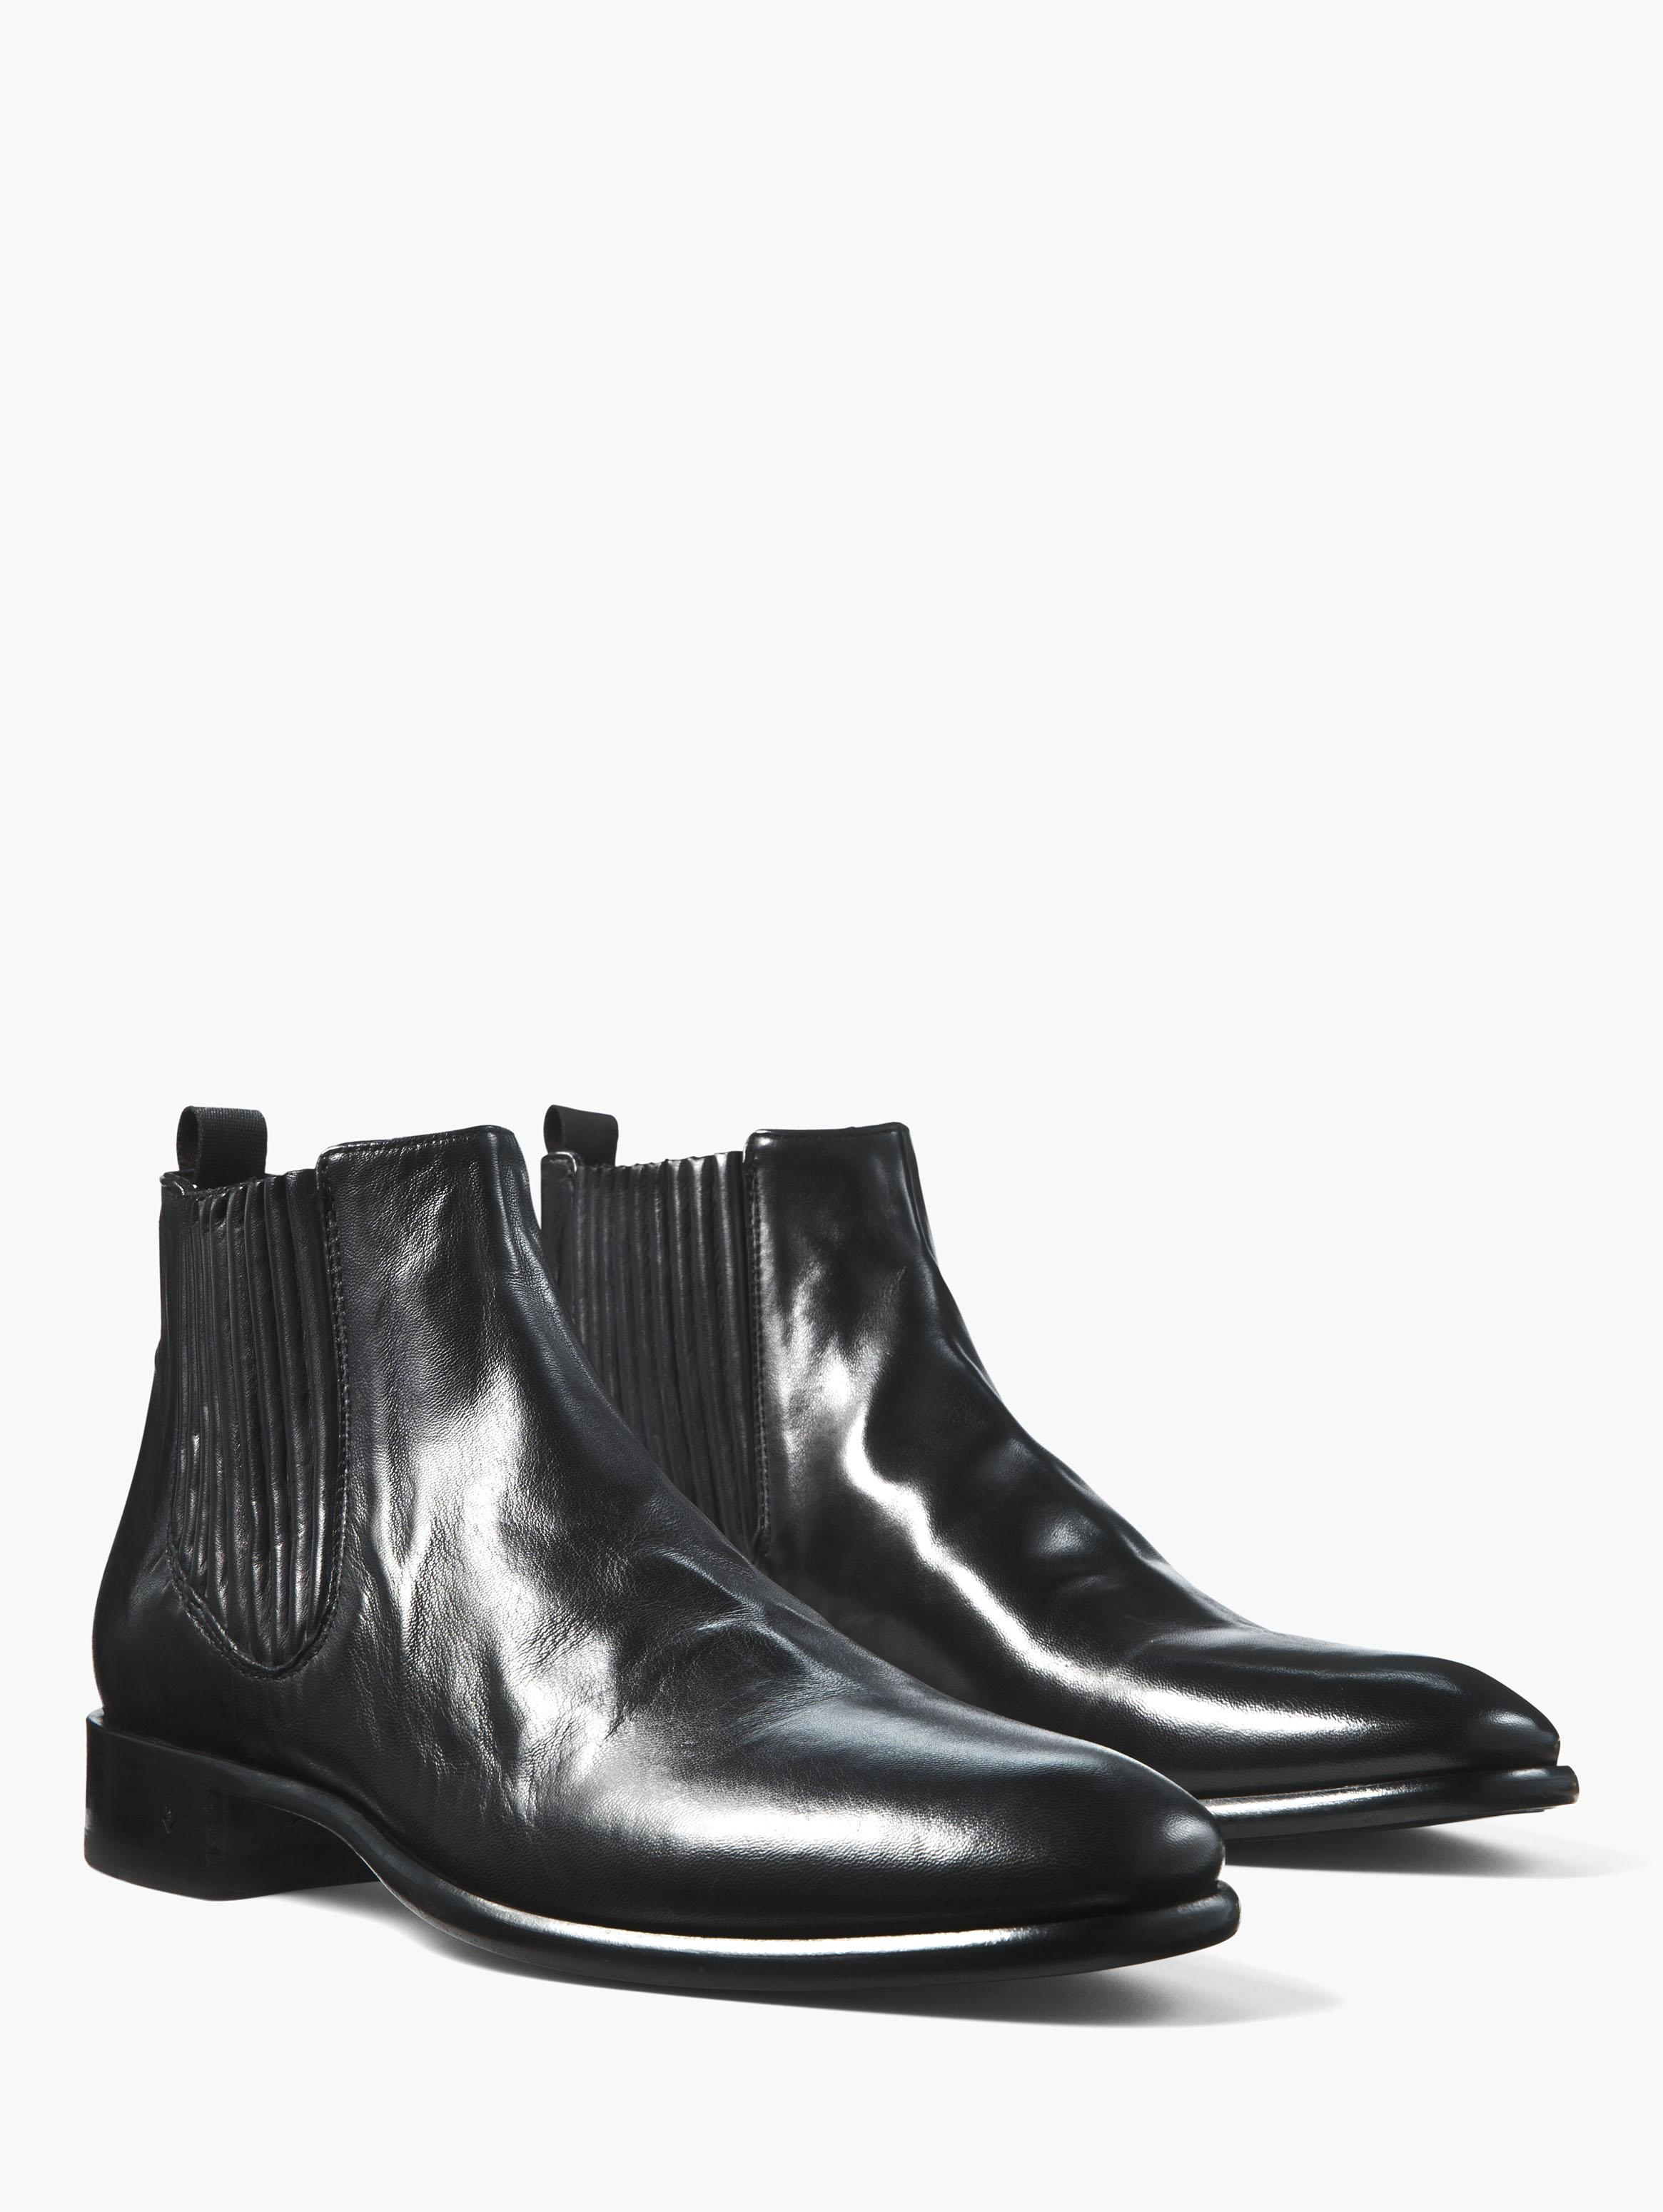 John Varvatos Men S Shoes And Sneakers At Menstyle Usa